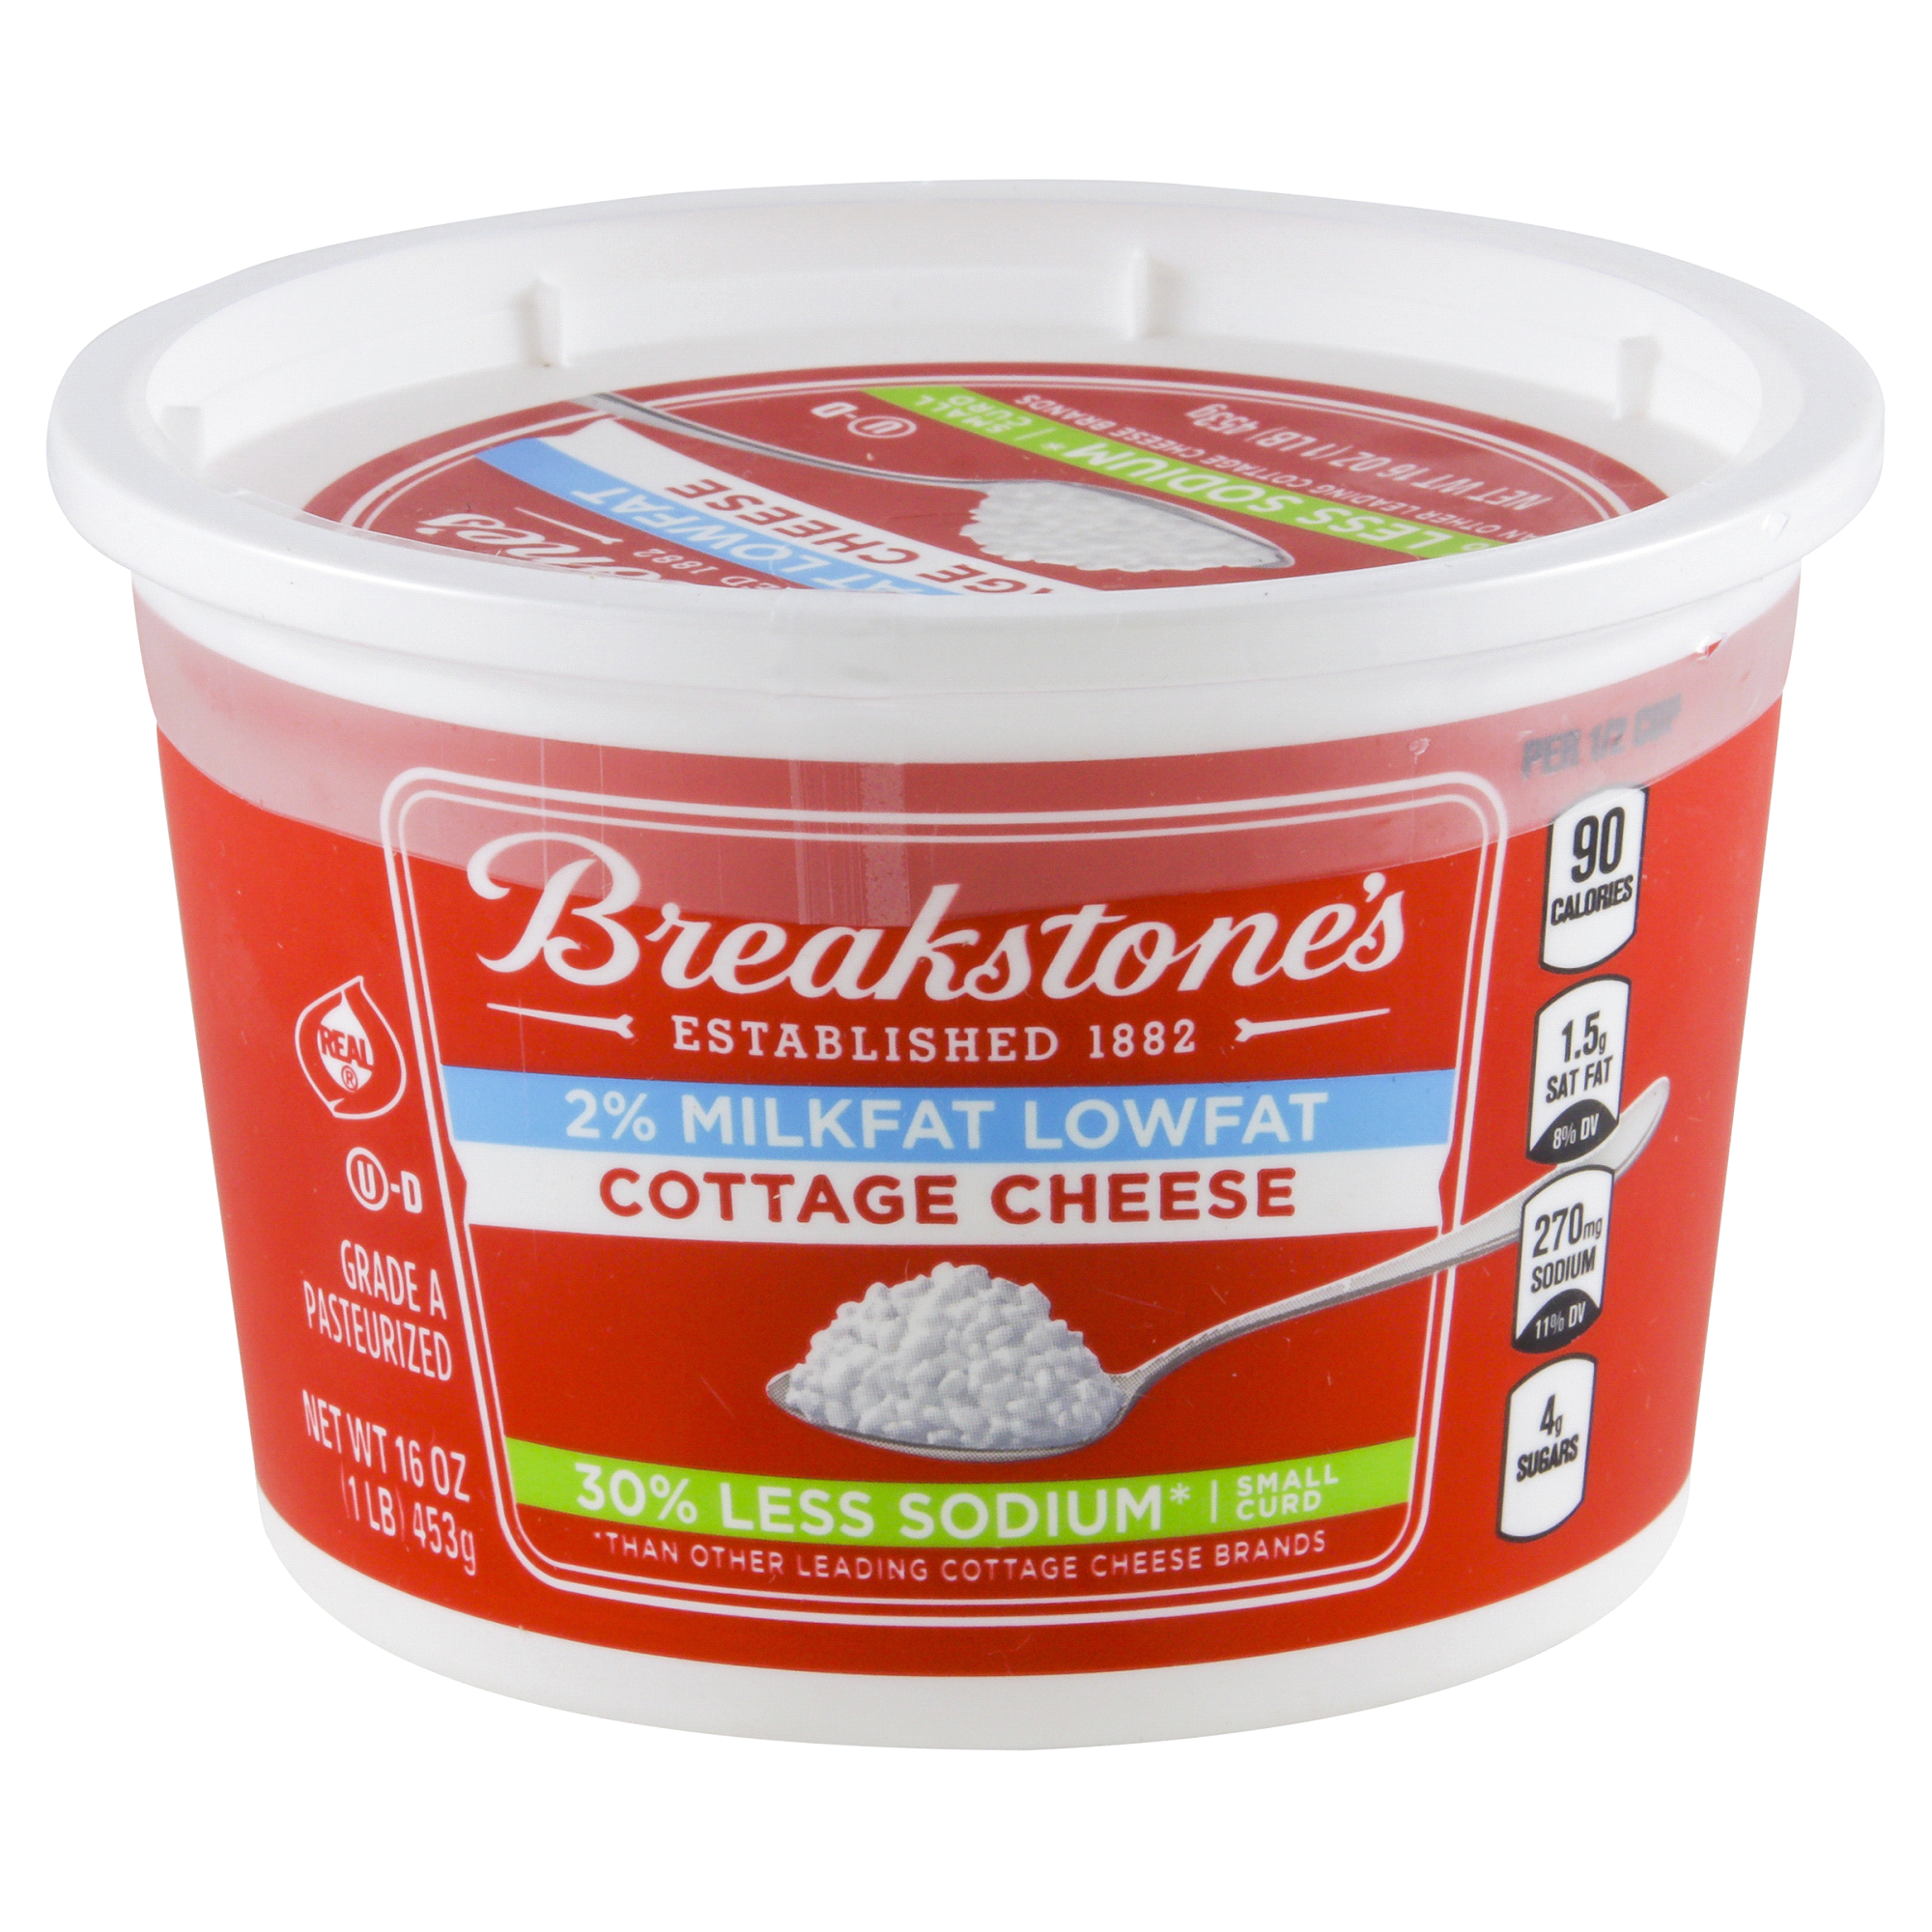 breakstones small curd low sodium cottage cheese 16 oz tub | meijer